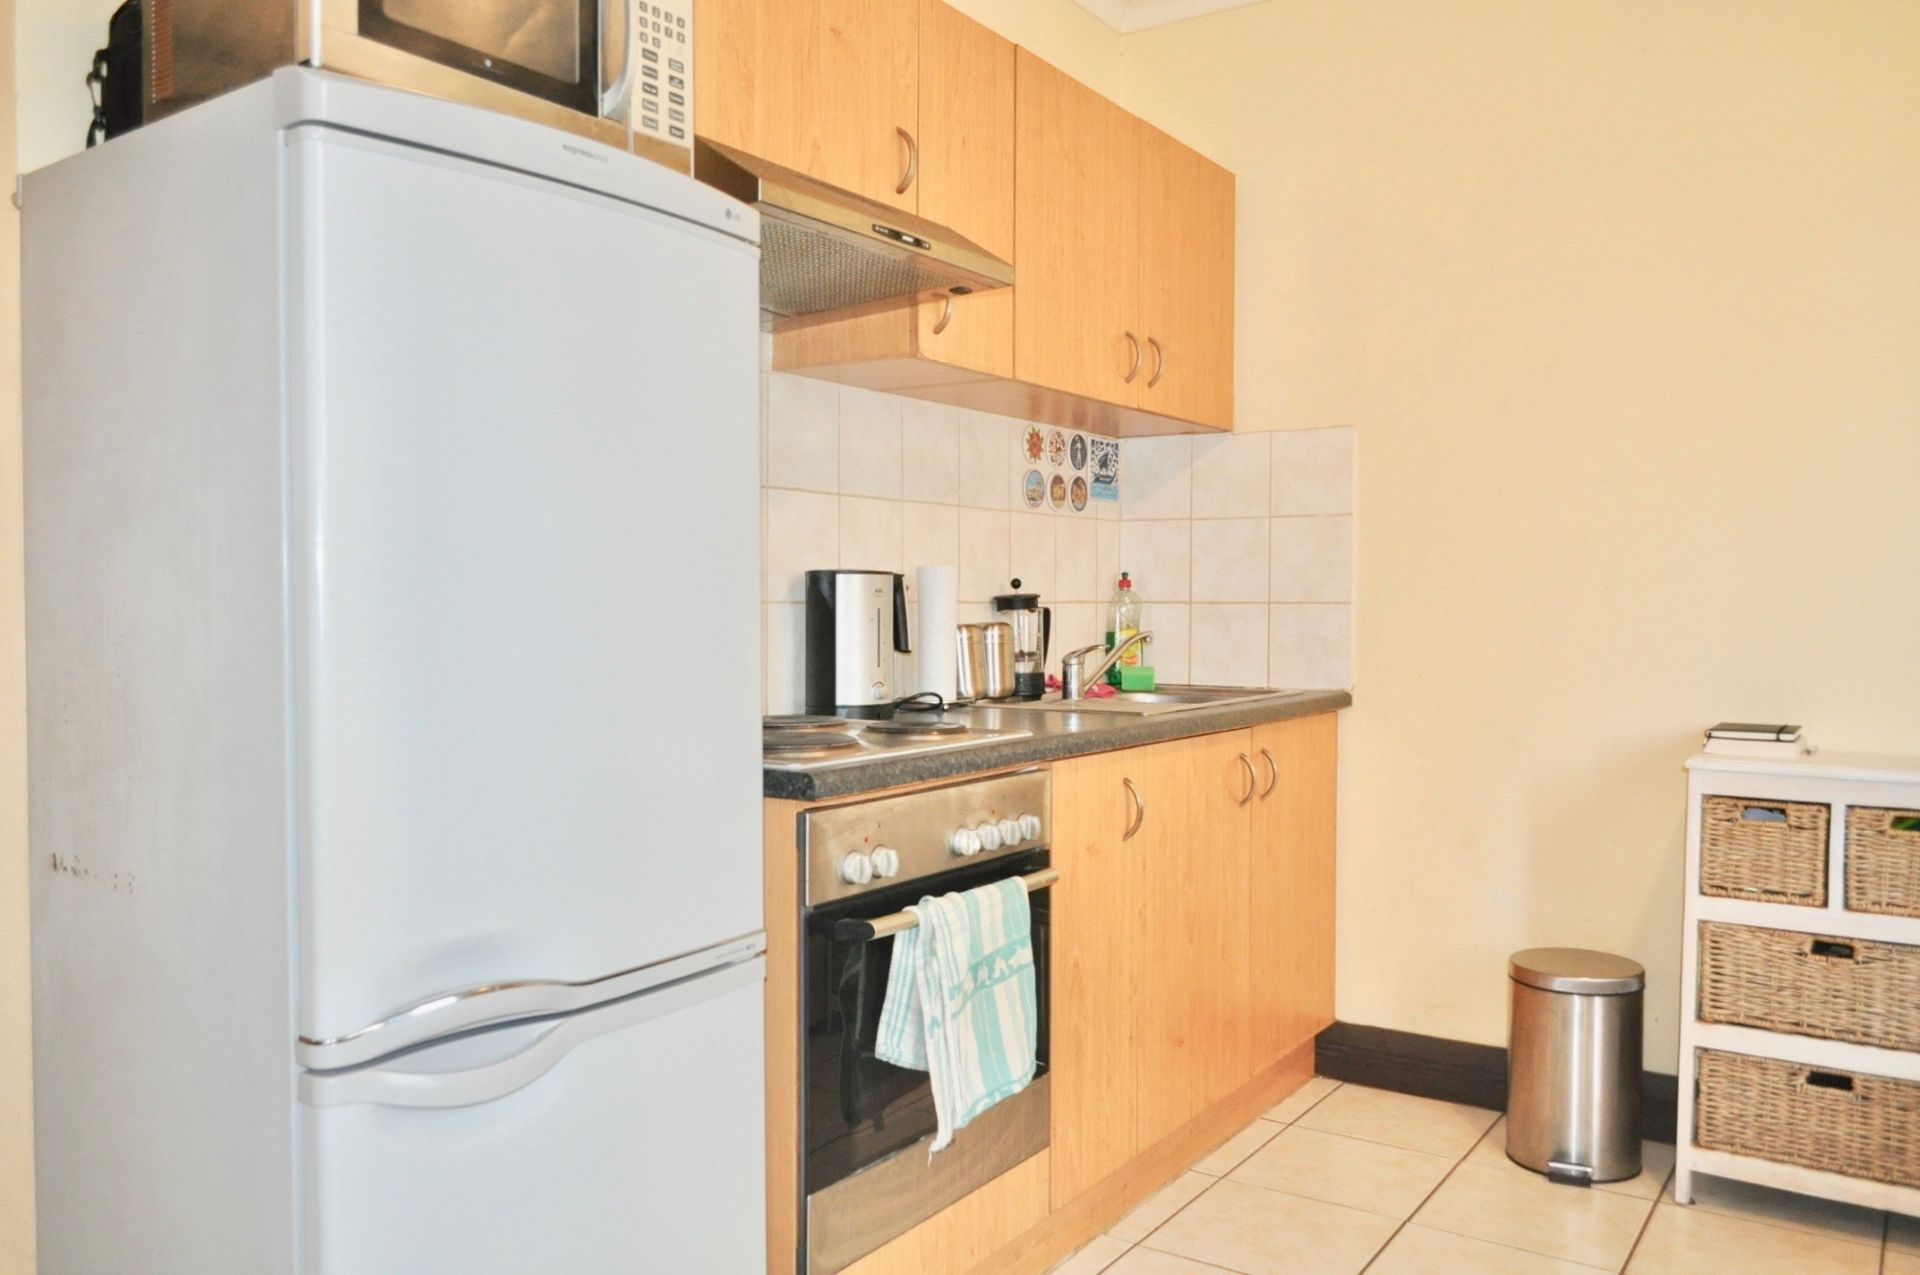 Apartment in City Centre - Kitchen 2